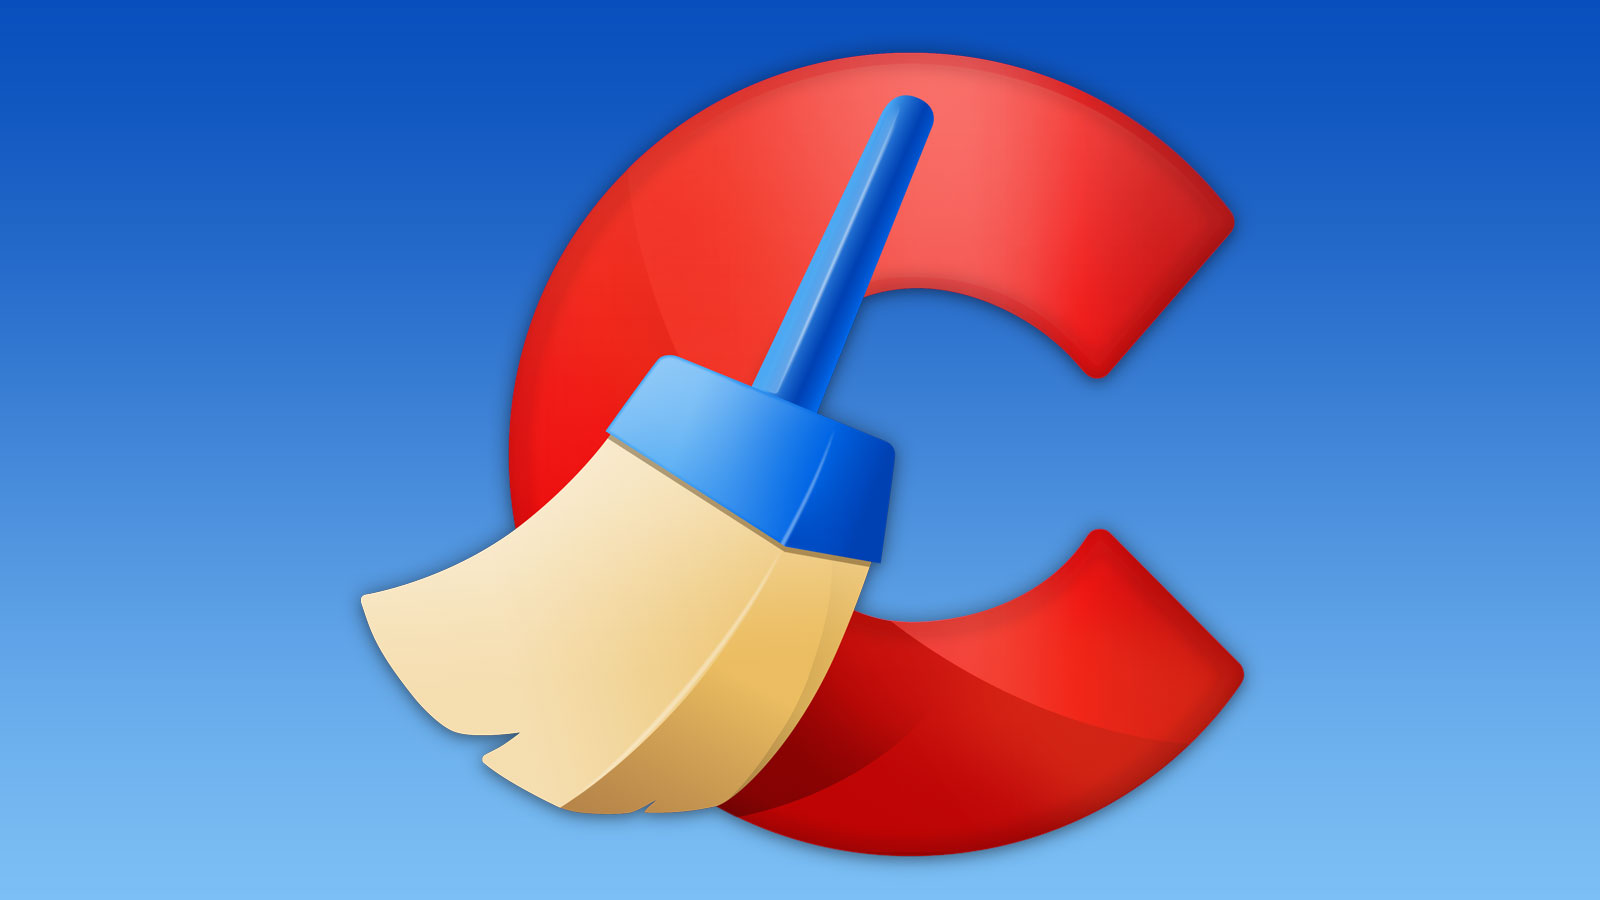 ccleanerlogo - CCleaner 5.71 with privacy fixes?